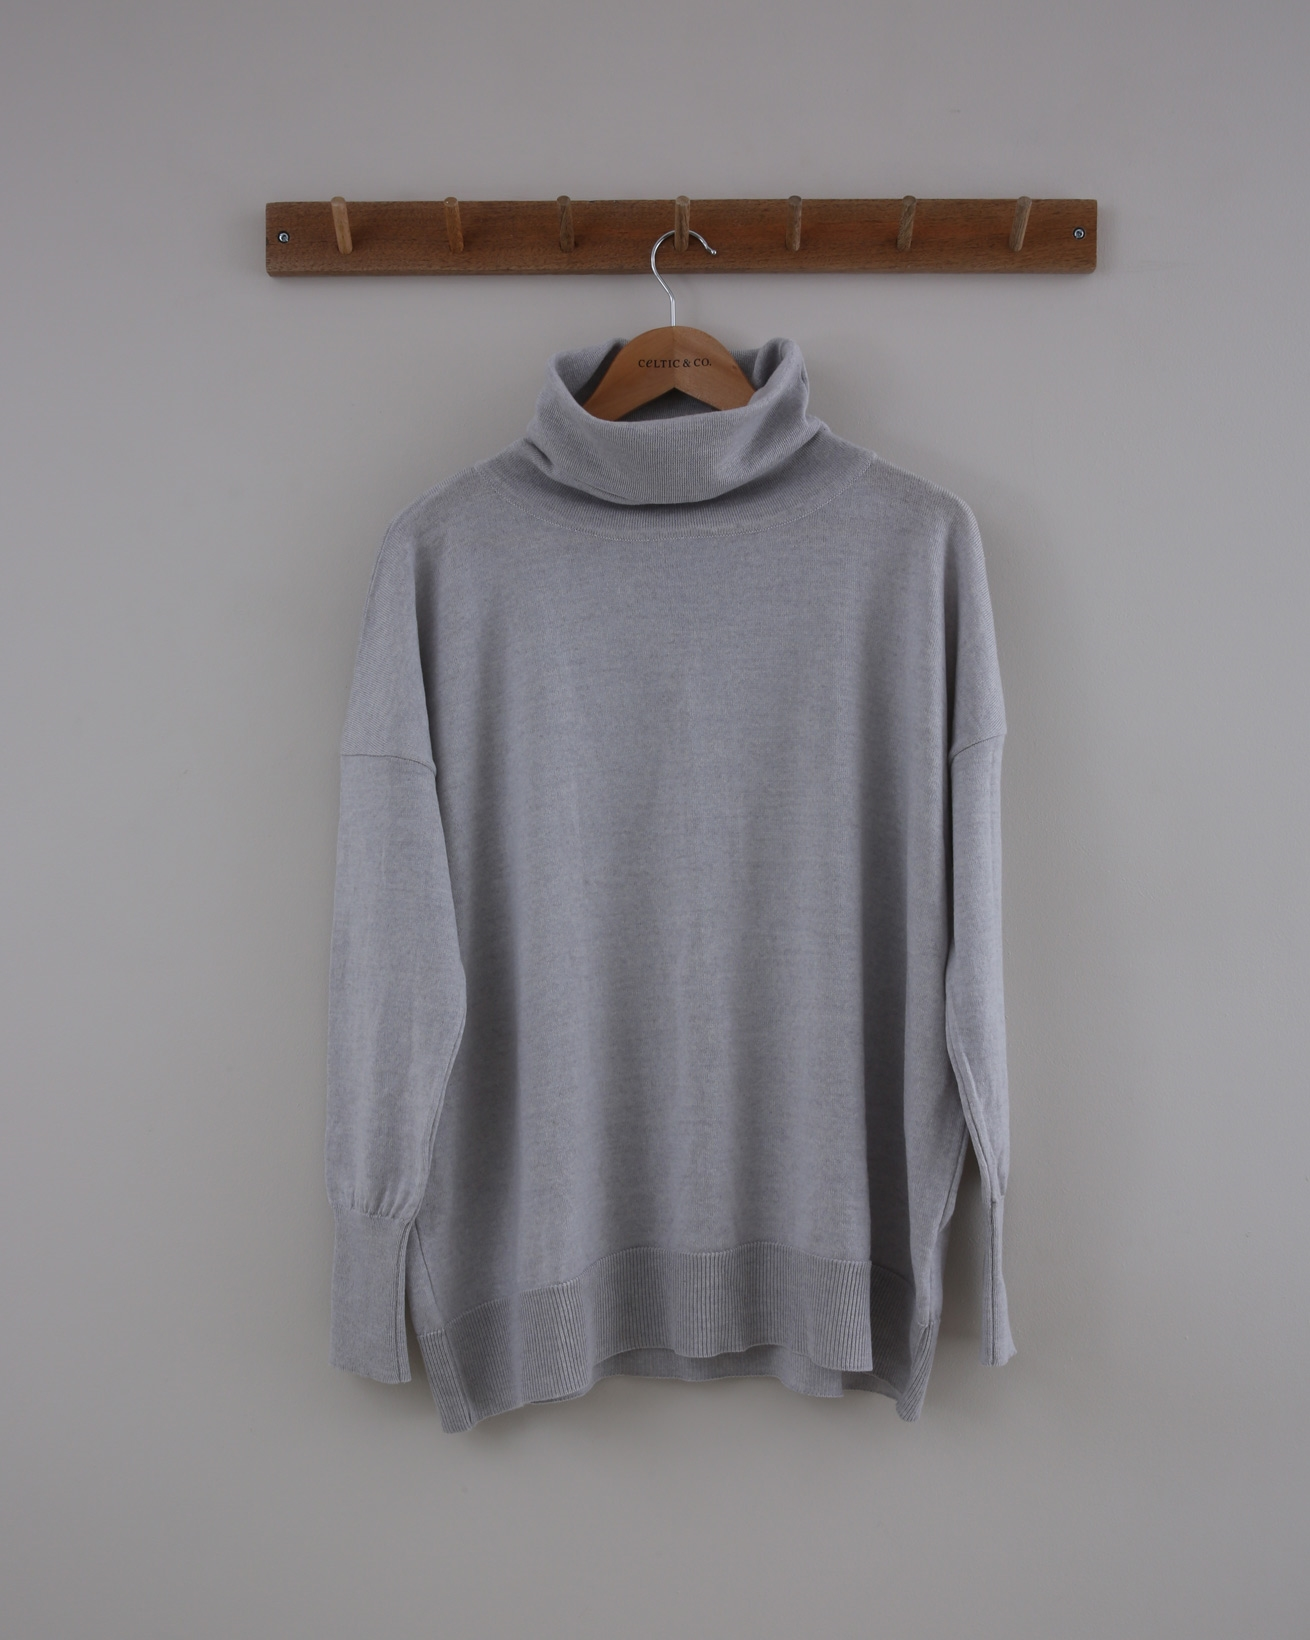 Slouchy Merino Roll Neck - Small - Fossil - 1423